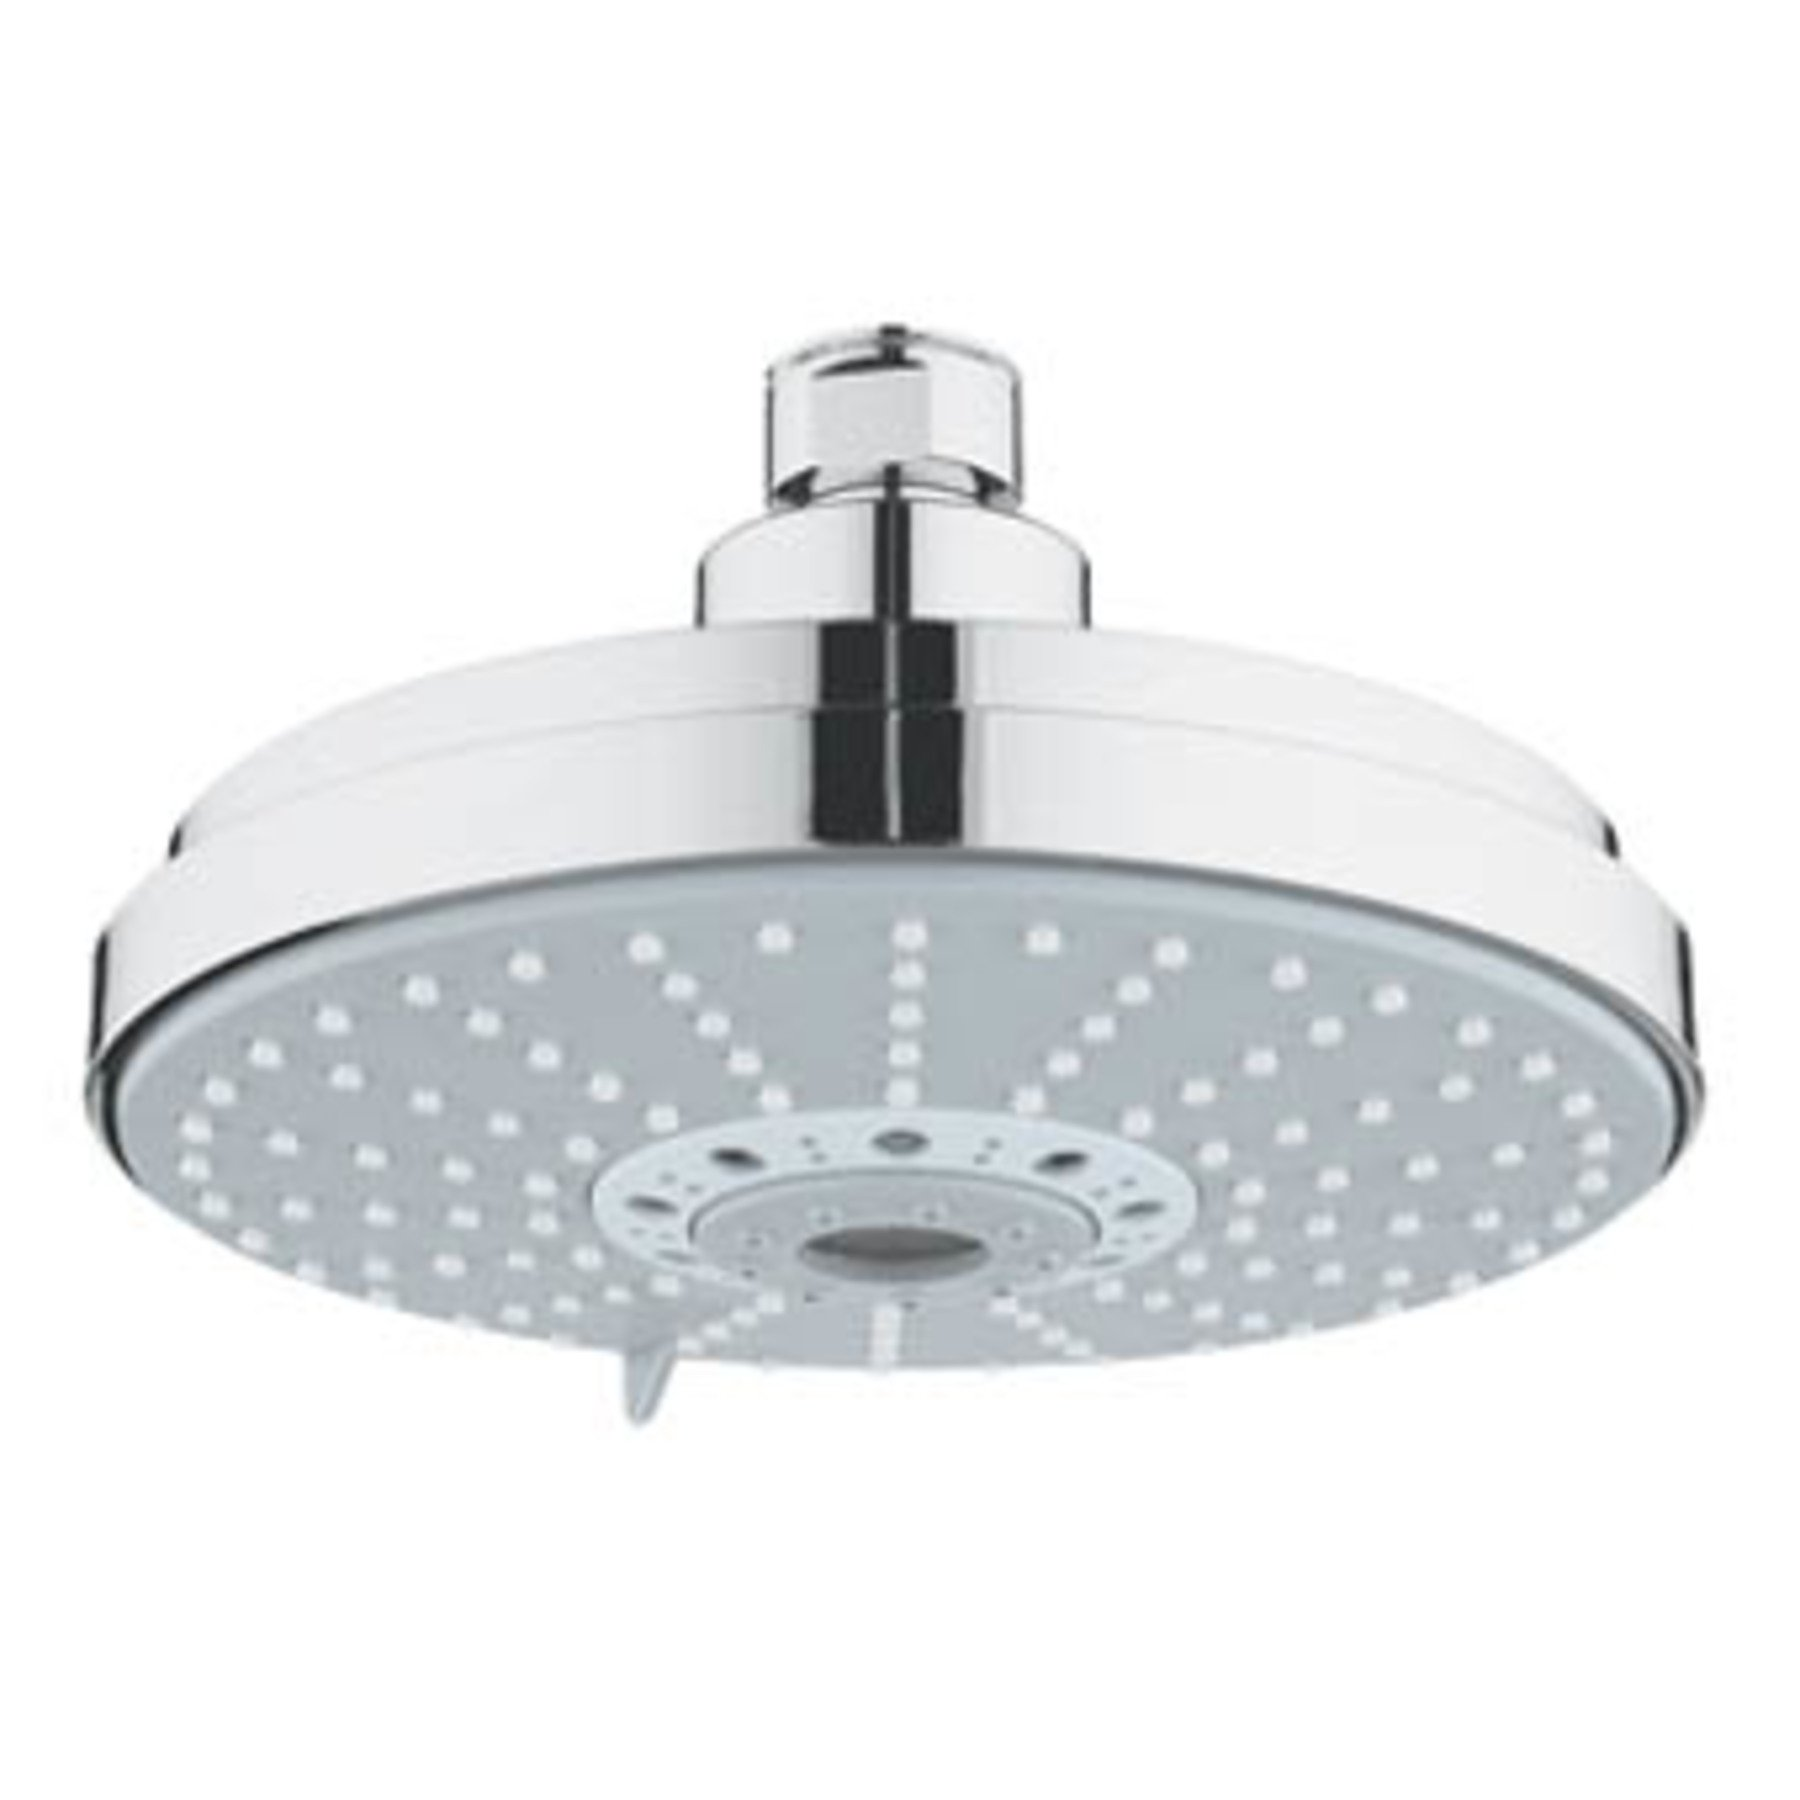 Grohe Rainshower hoofddouche Cosmopolitan 160mm chroom